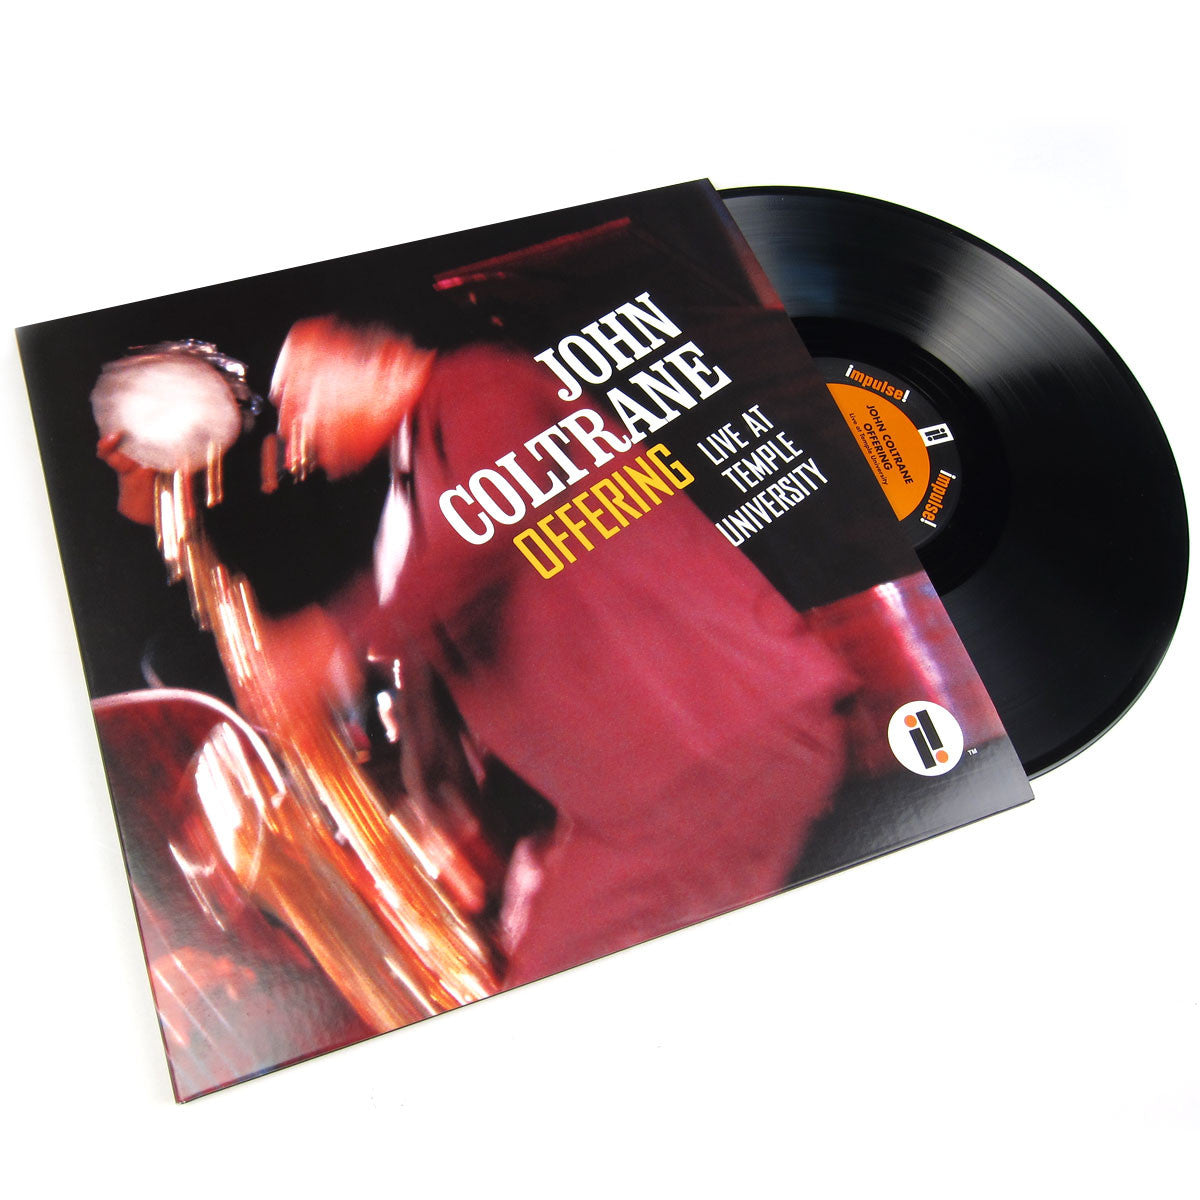 John Coltrane: Offering Live at Temple University (180g) Deluxe Vinyl 2LP